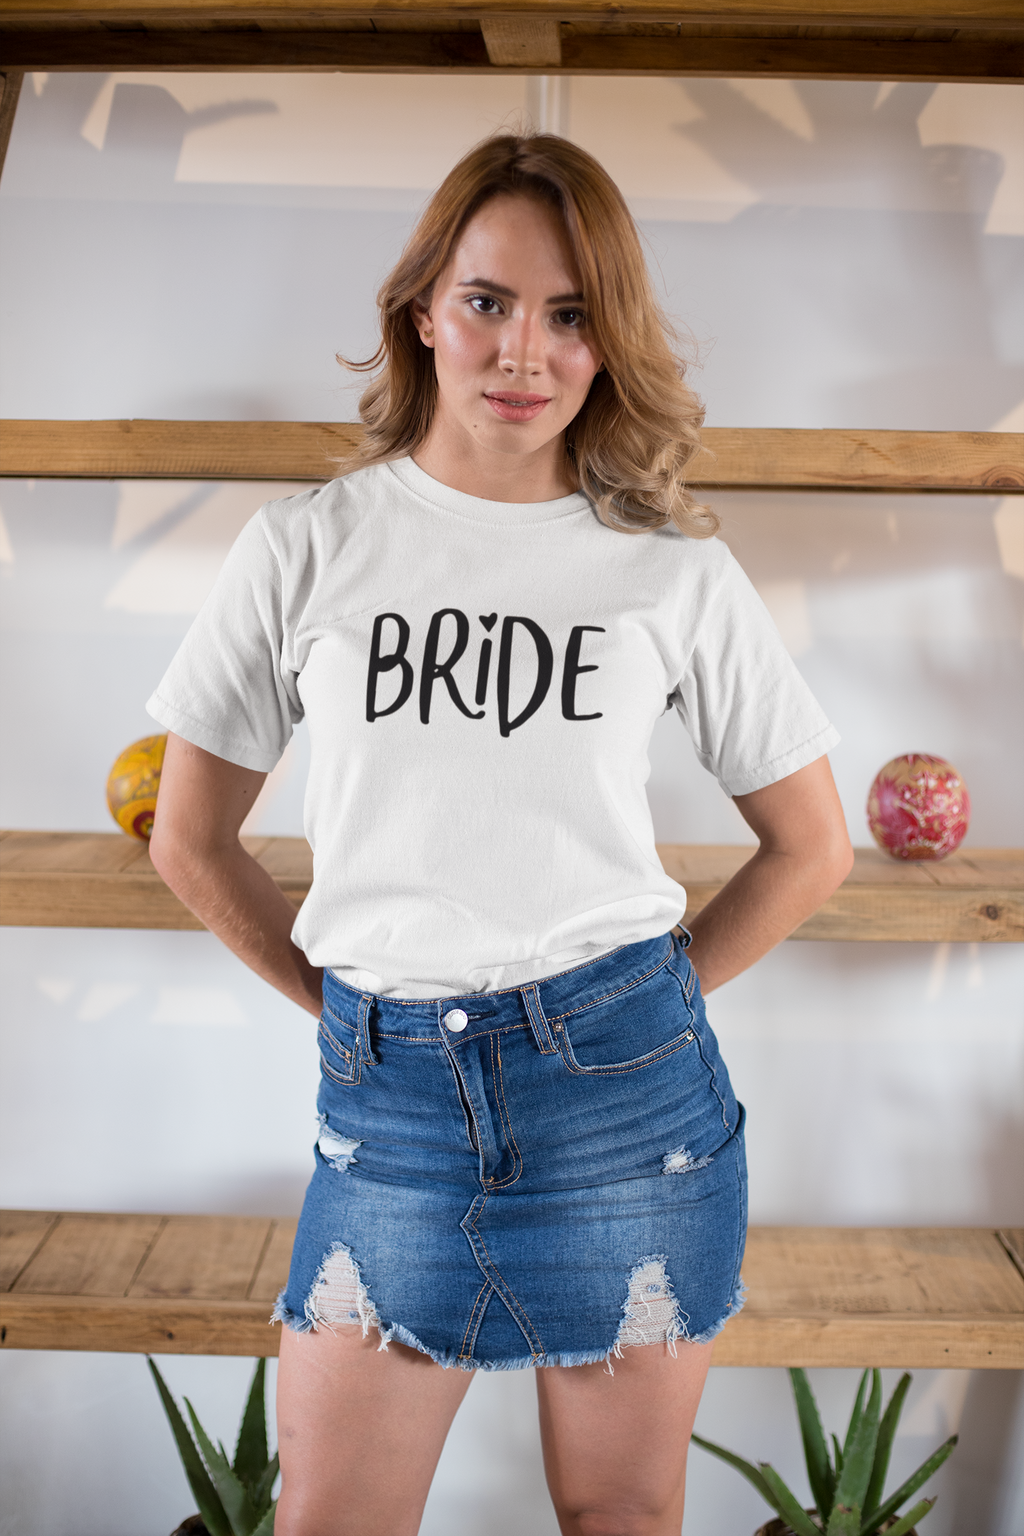 be lorette top white evjf t-shirt with Bride flocage in black